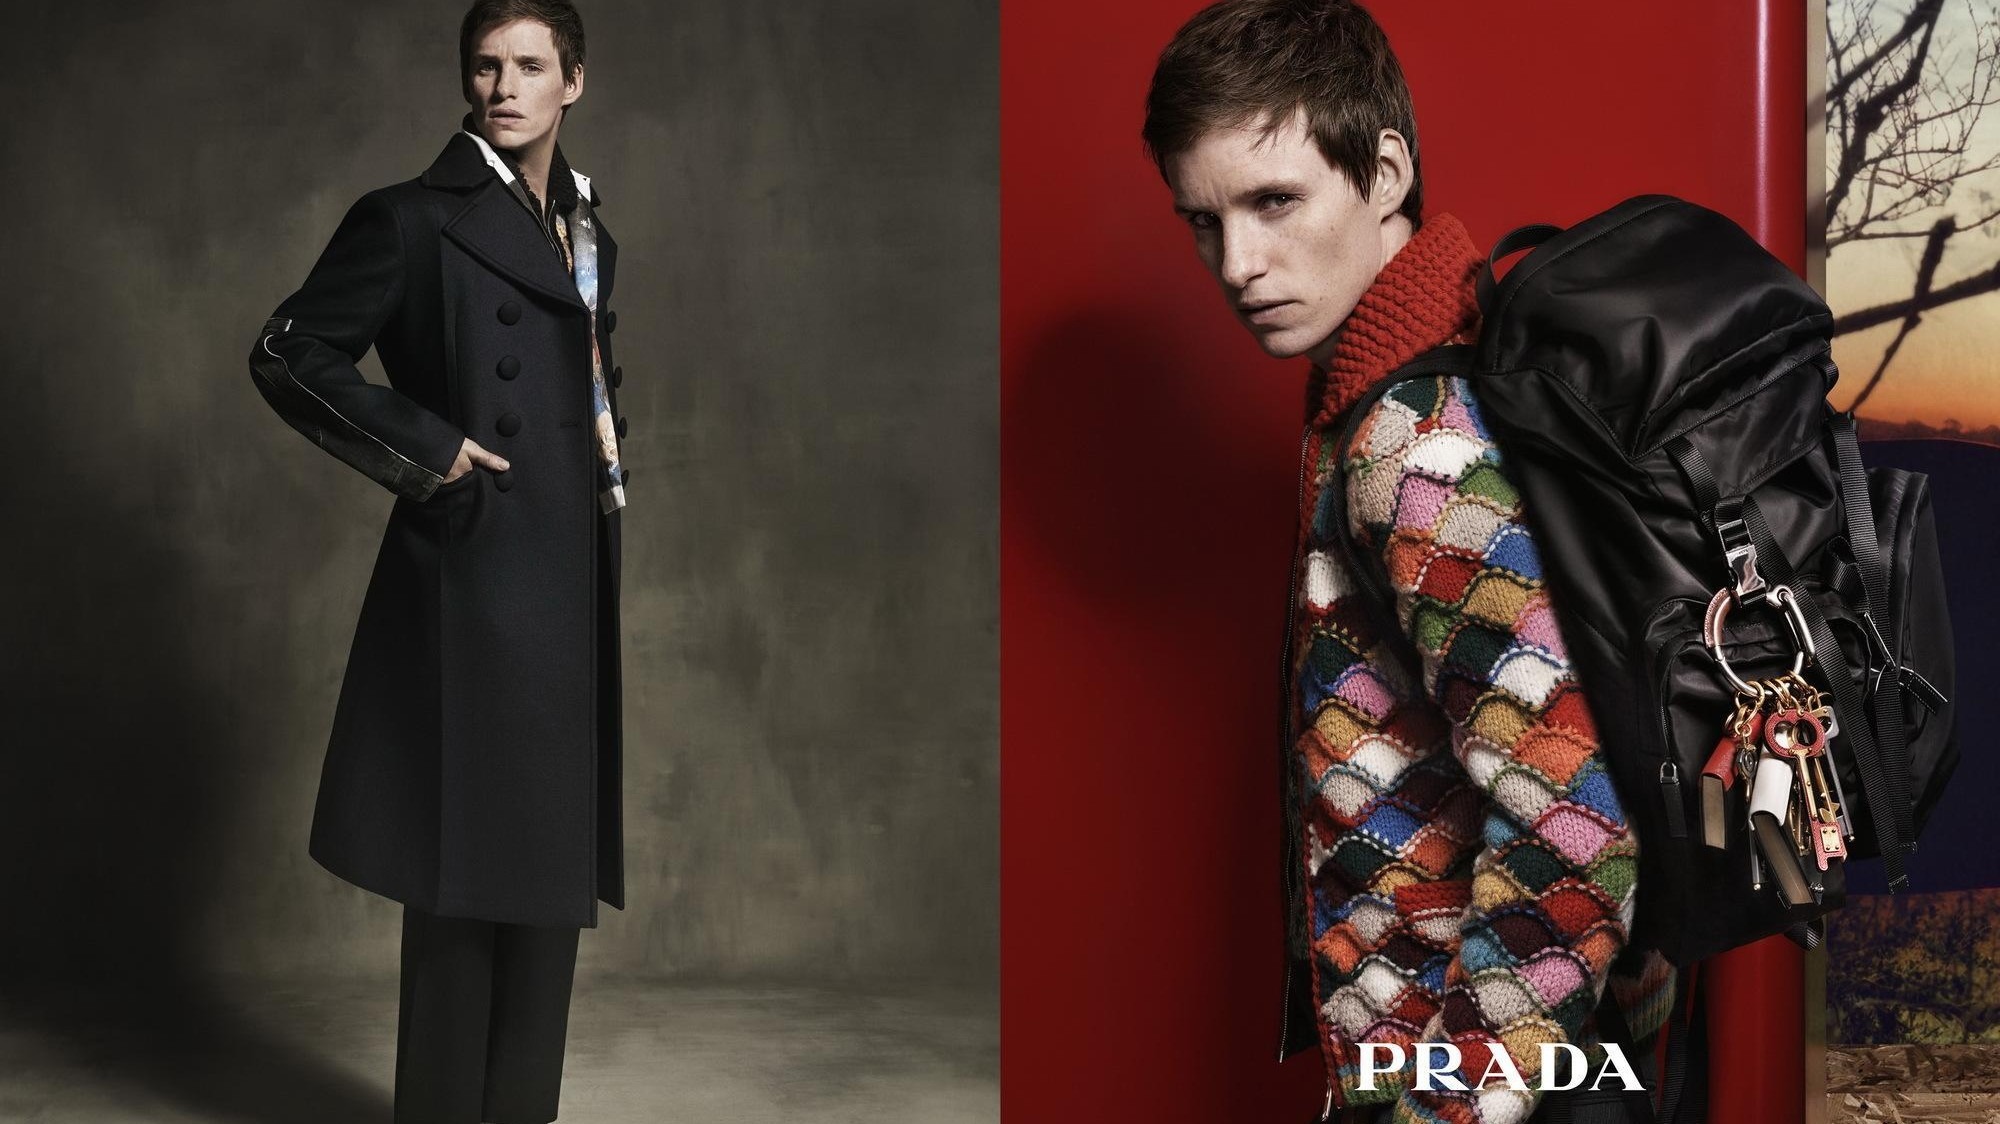 eddie redmayne is on a romantic detective mission for prada men's